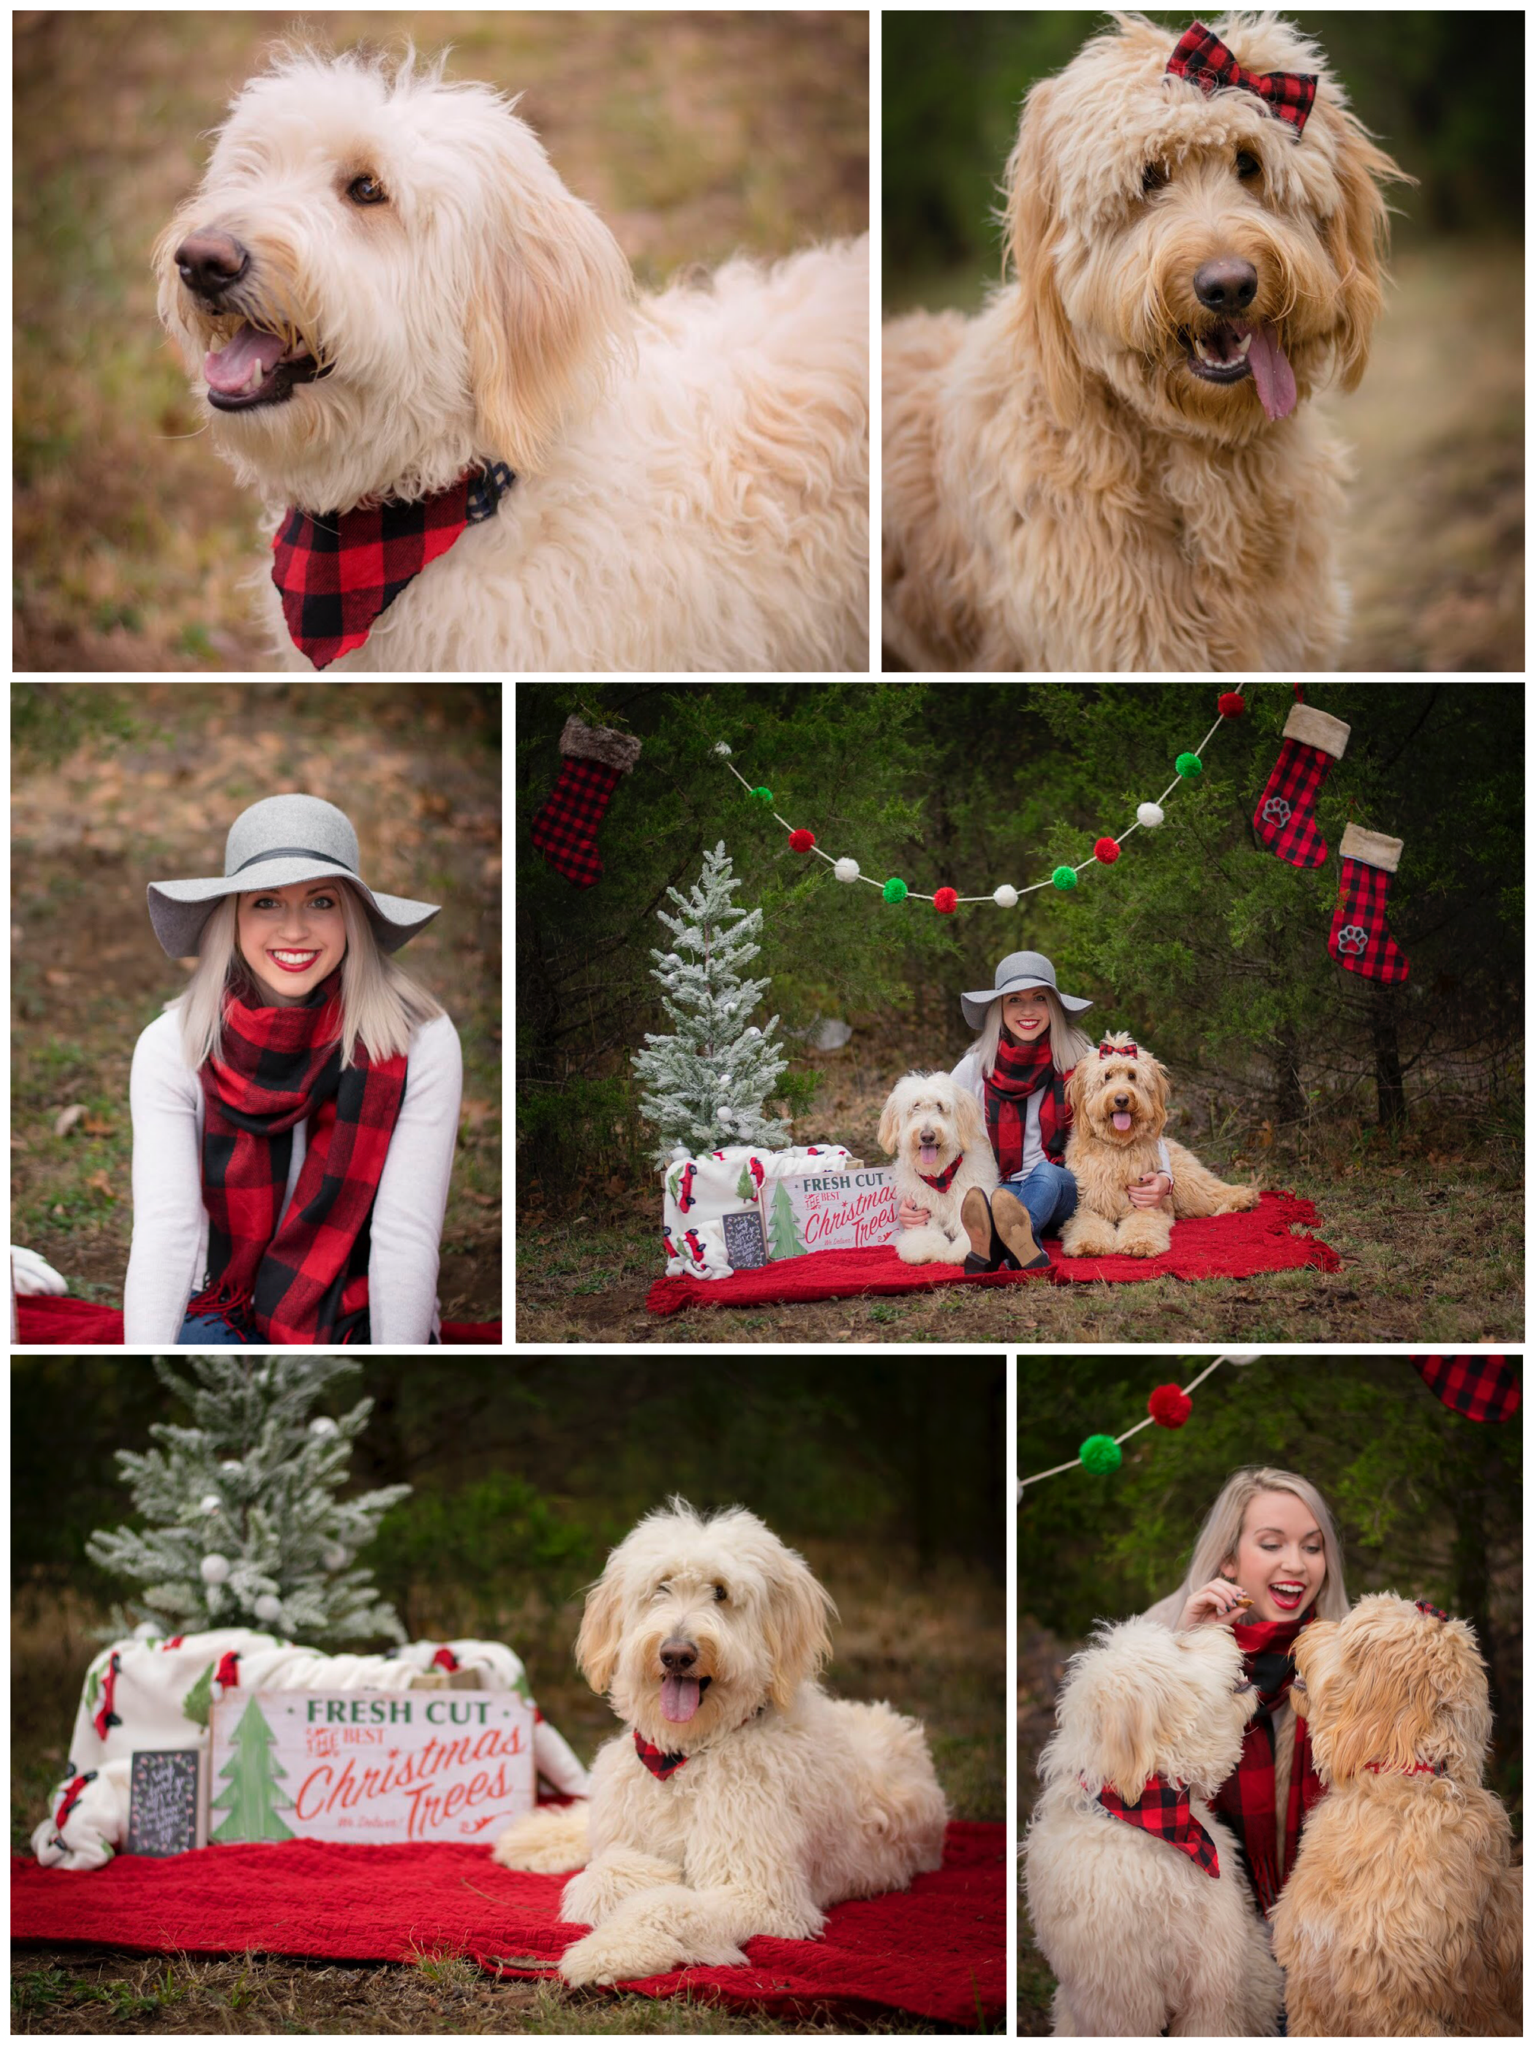 Family Christmas Pictures Ideas With Dogs Outdoor In Cedar Trees Props Photos